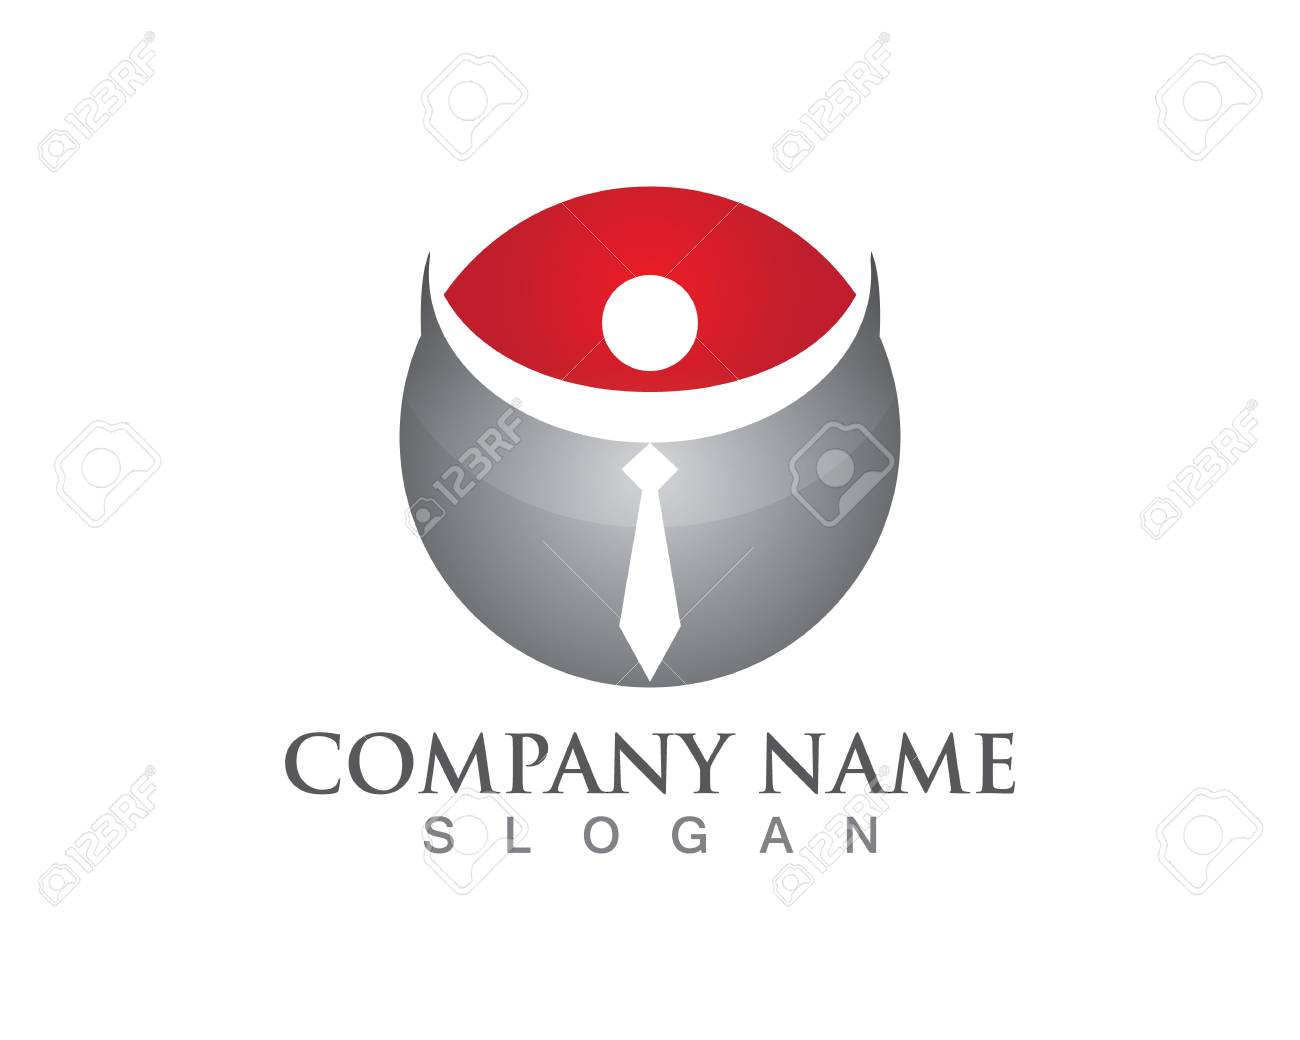 tuxedo man logo and symbols black icons template ロイヤリティフリー